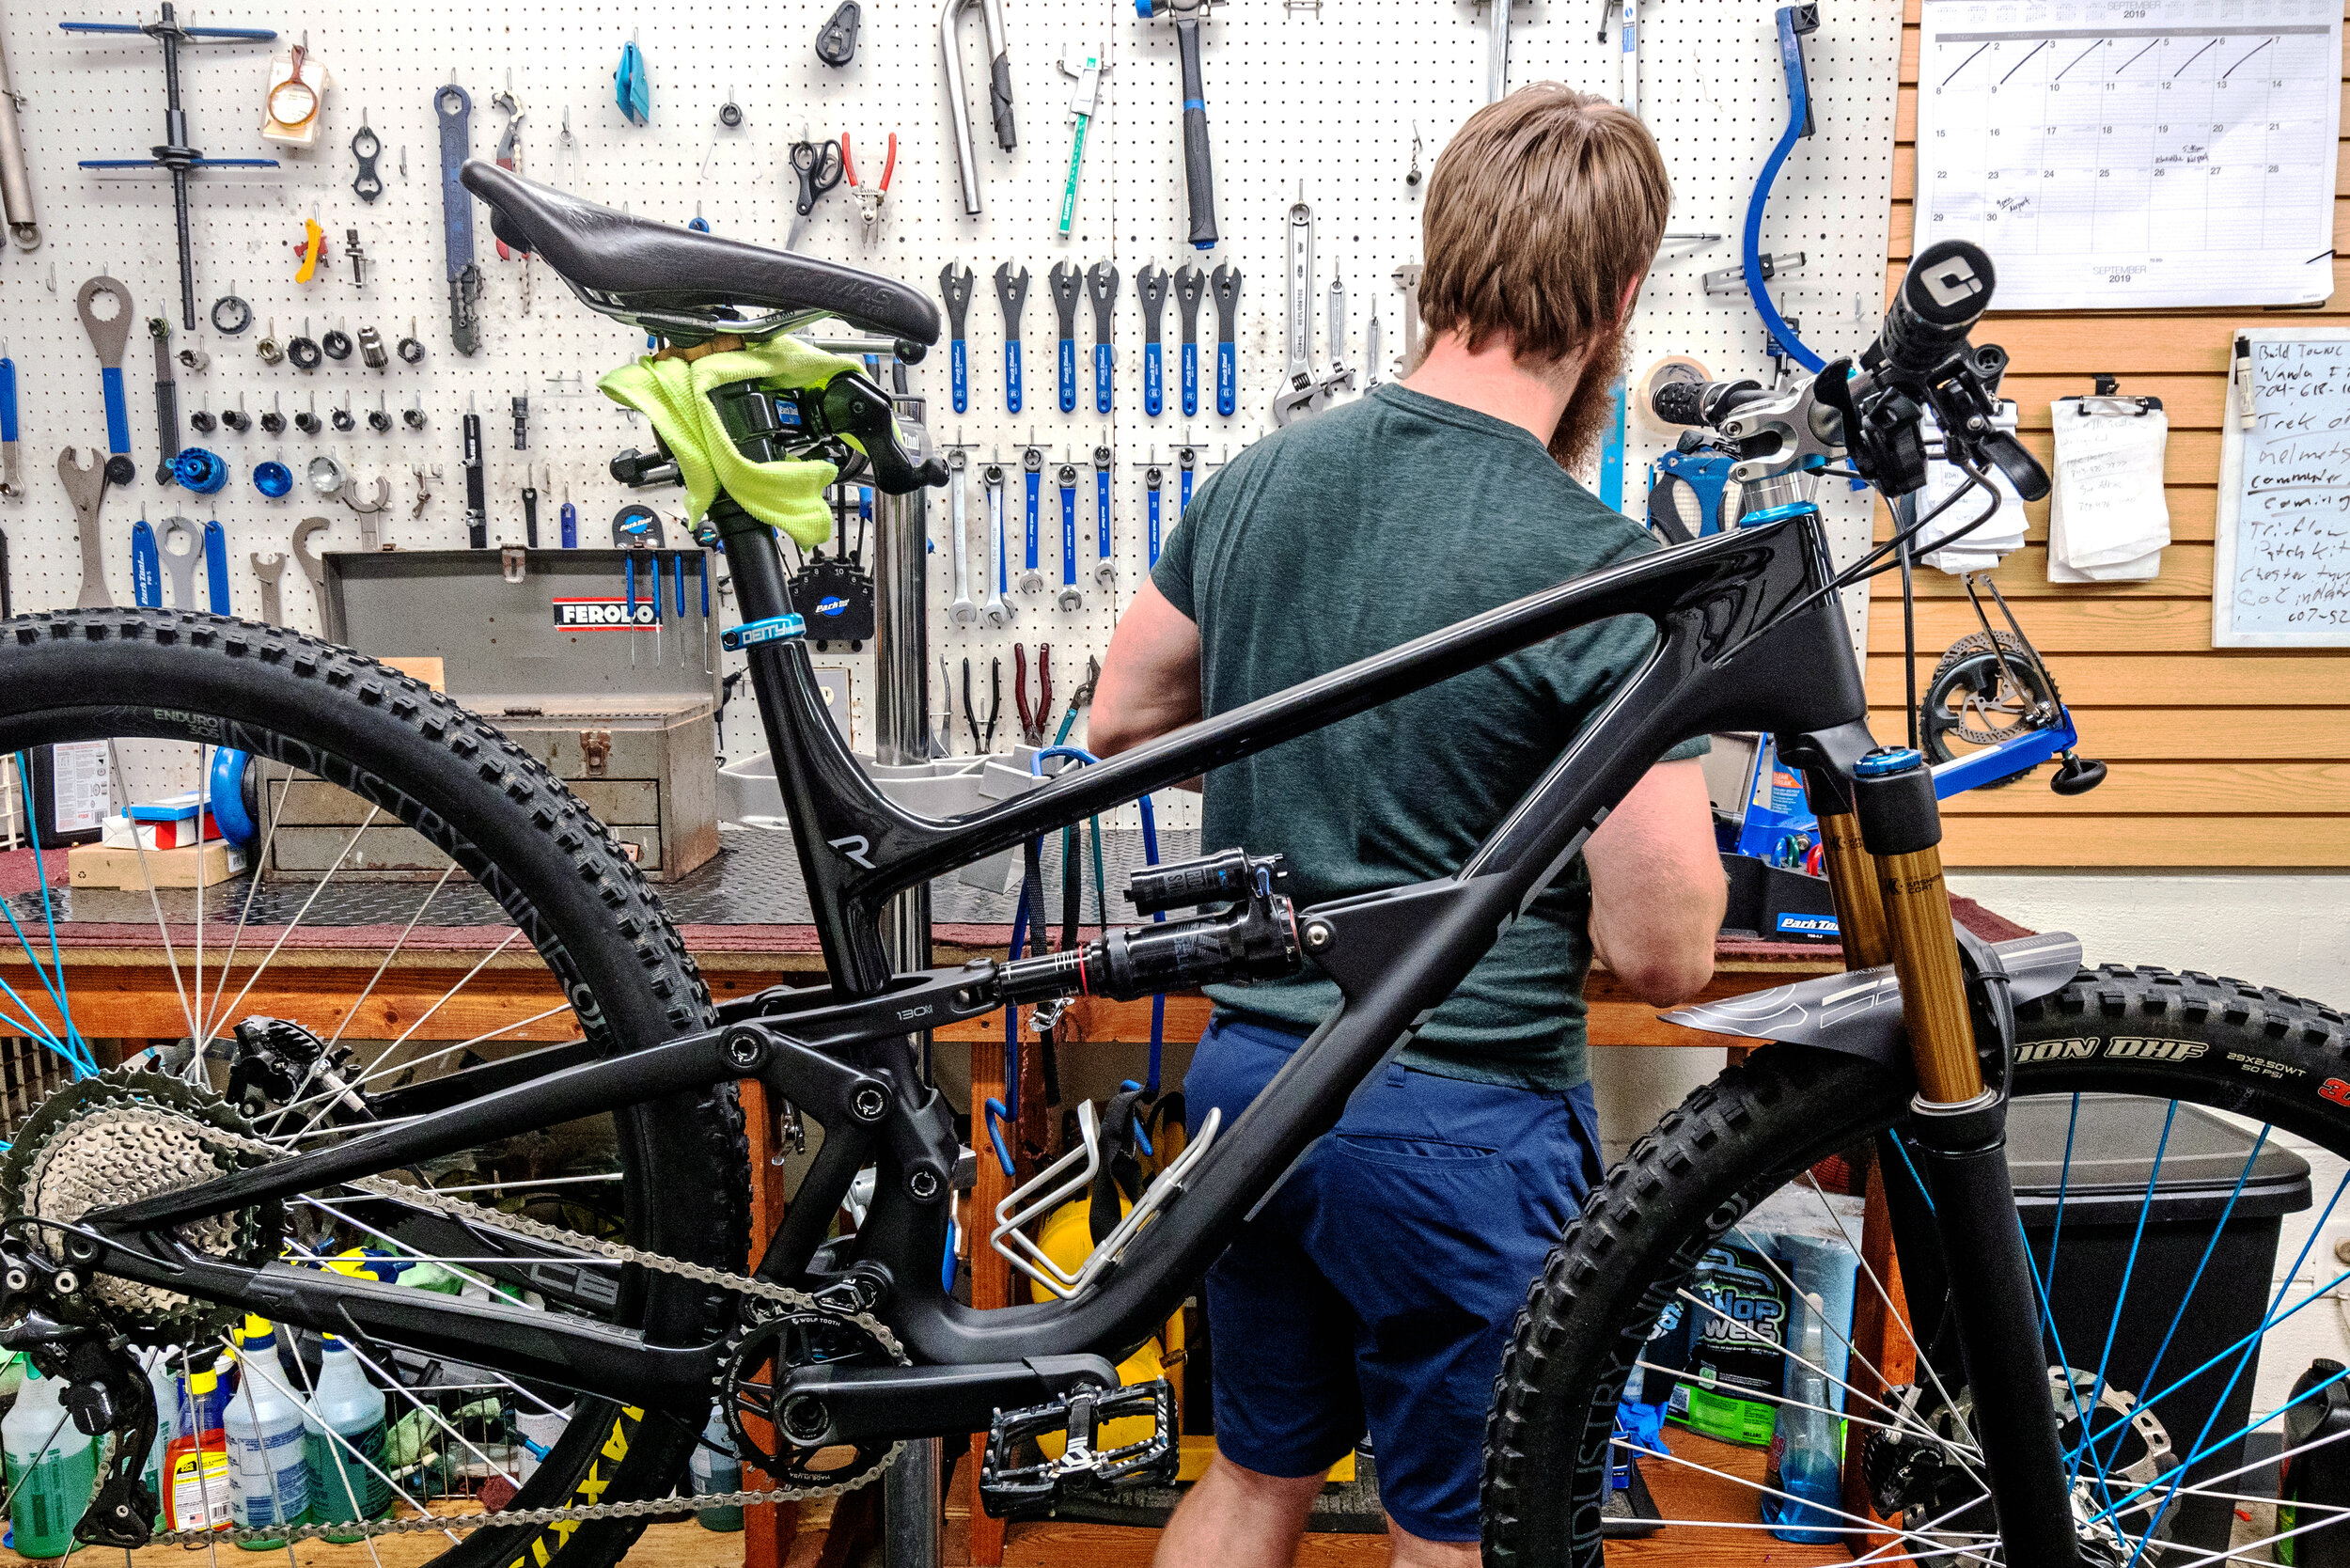 Building up a new two-wheeled fun machine? We love to help your dream build come to life.